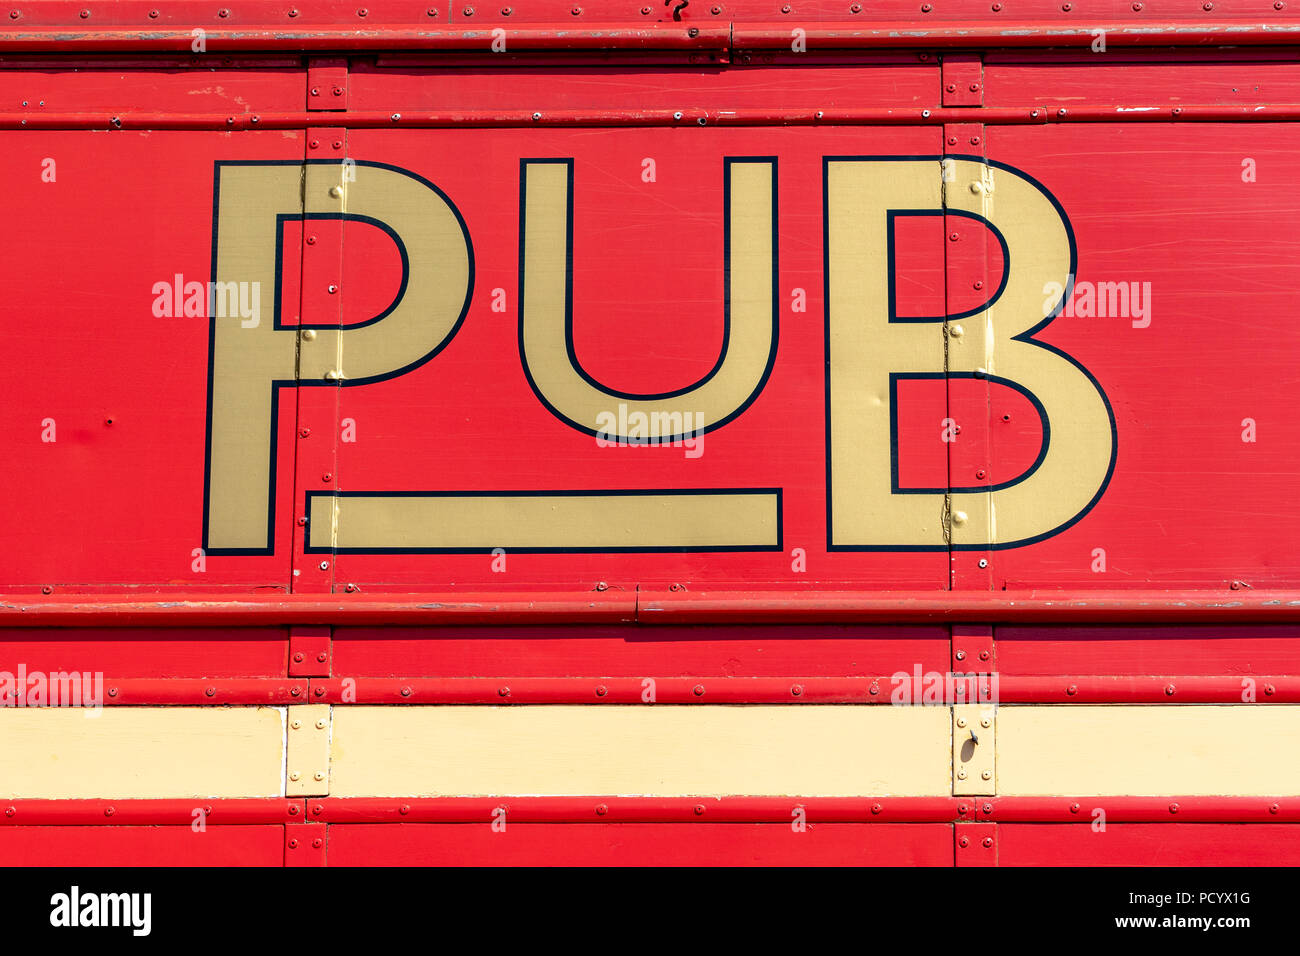 The word Pub in gold on red background - Stock Image